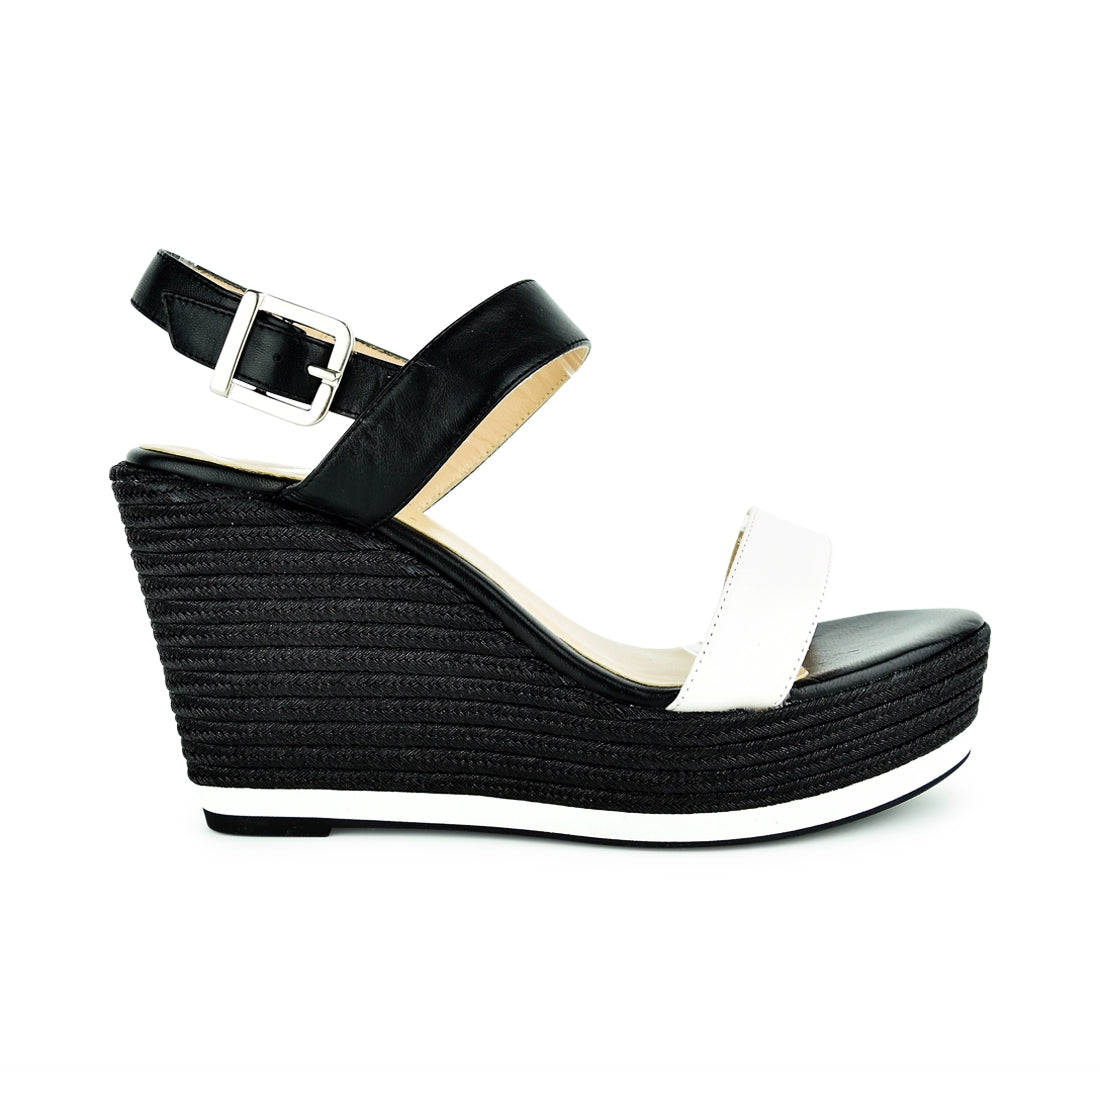 VIVO - Marian Wedge Sandal Black/White